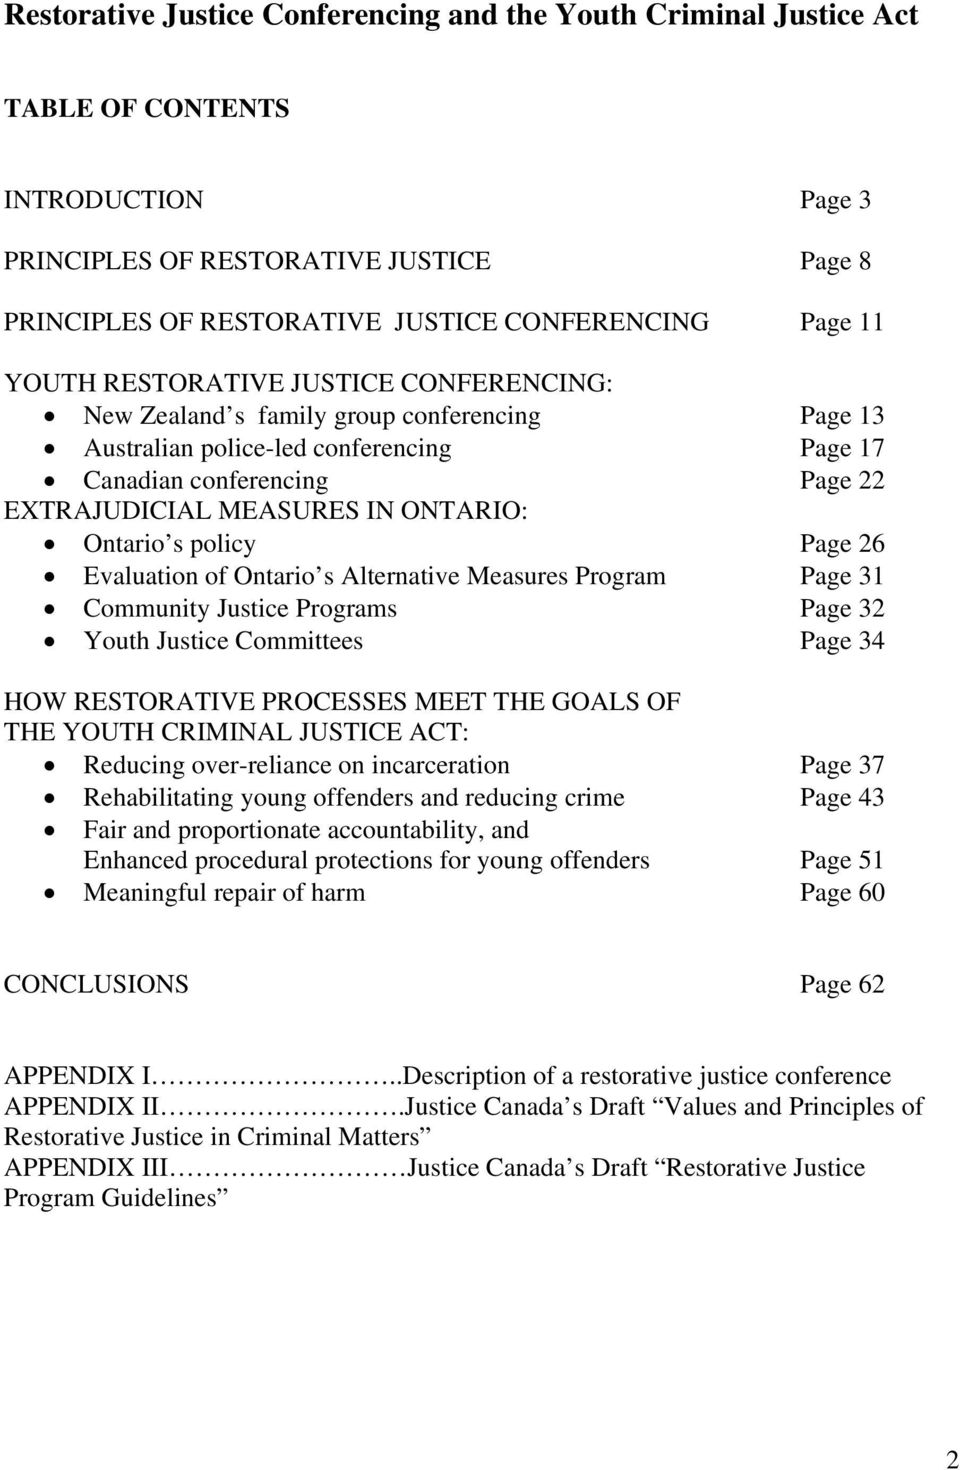 essays on restorative justice programs